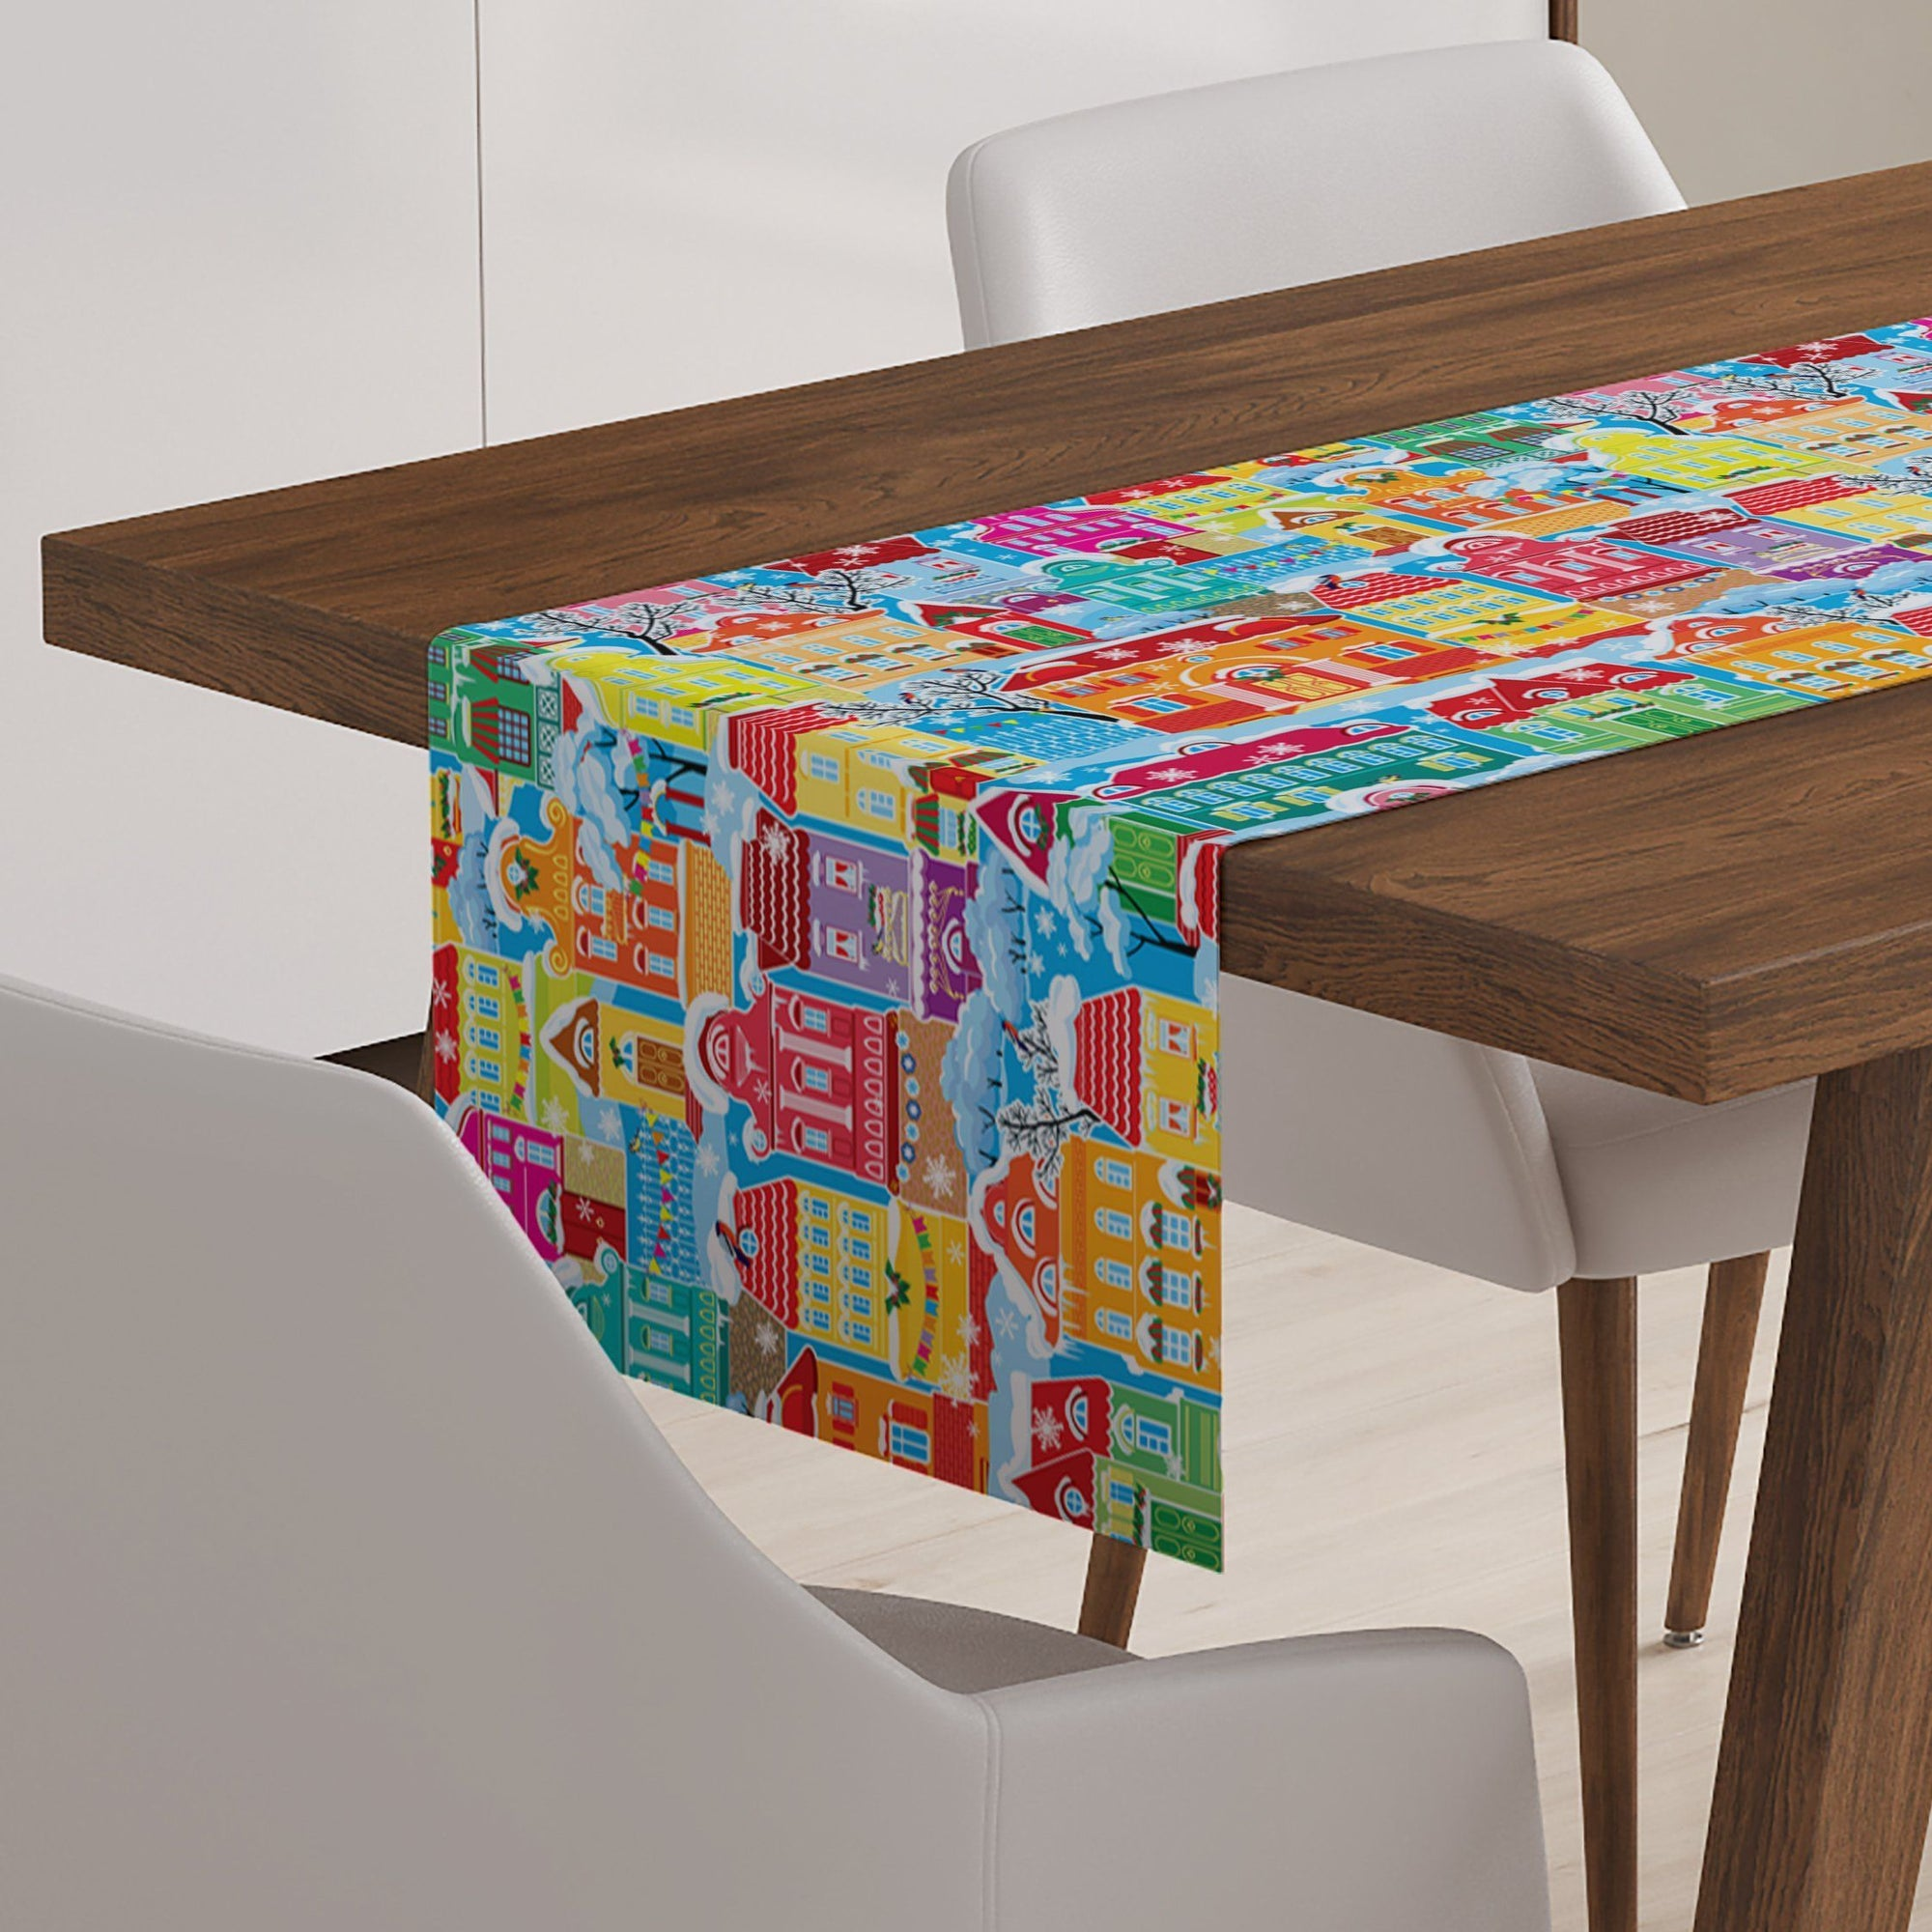 Snowy Village Table Runner - Table Runners - W.FRANCIS